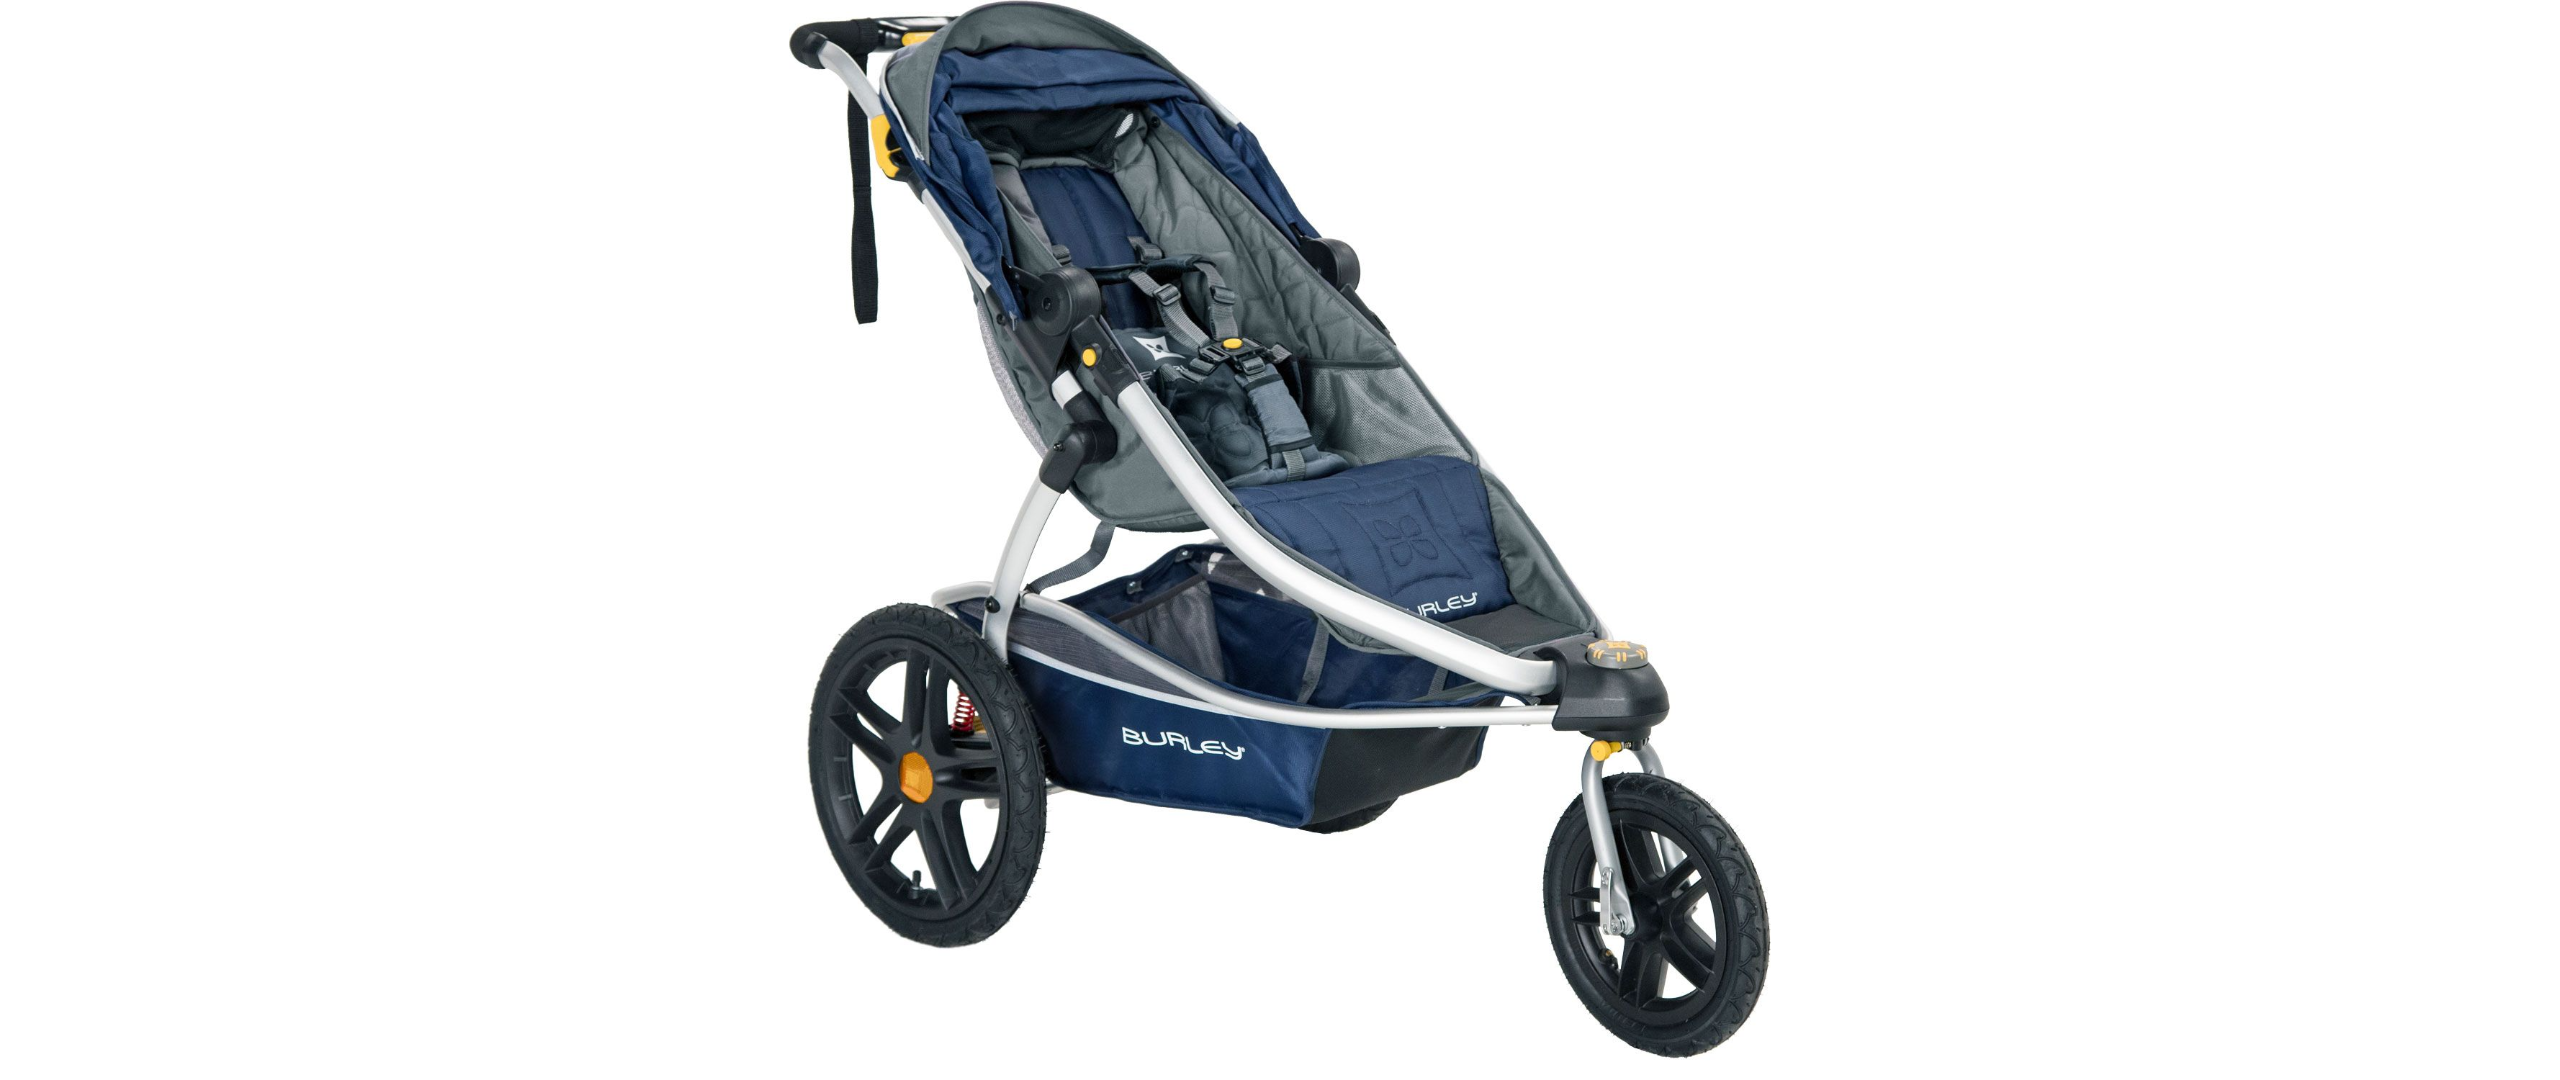 Burley Solstice Single Jogging Stroller $249.97